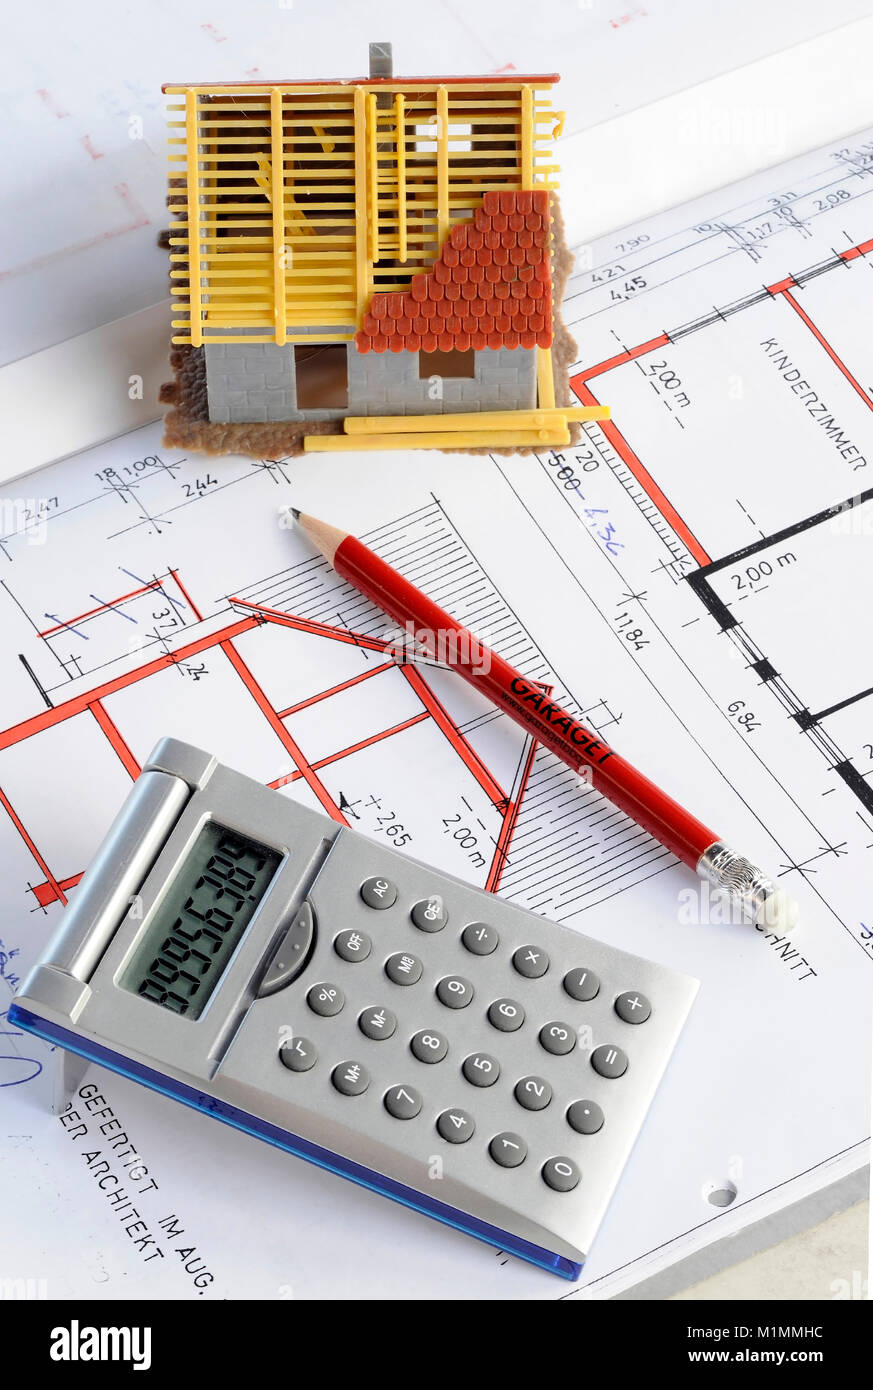 Construction costs residential property for owner-occupied homes real estate market, Wohneigentum Eigenheimzulage Stock Photo